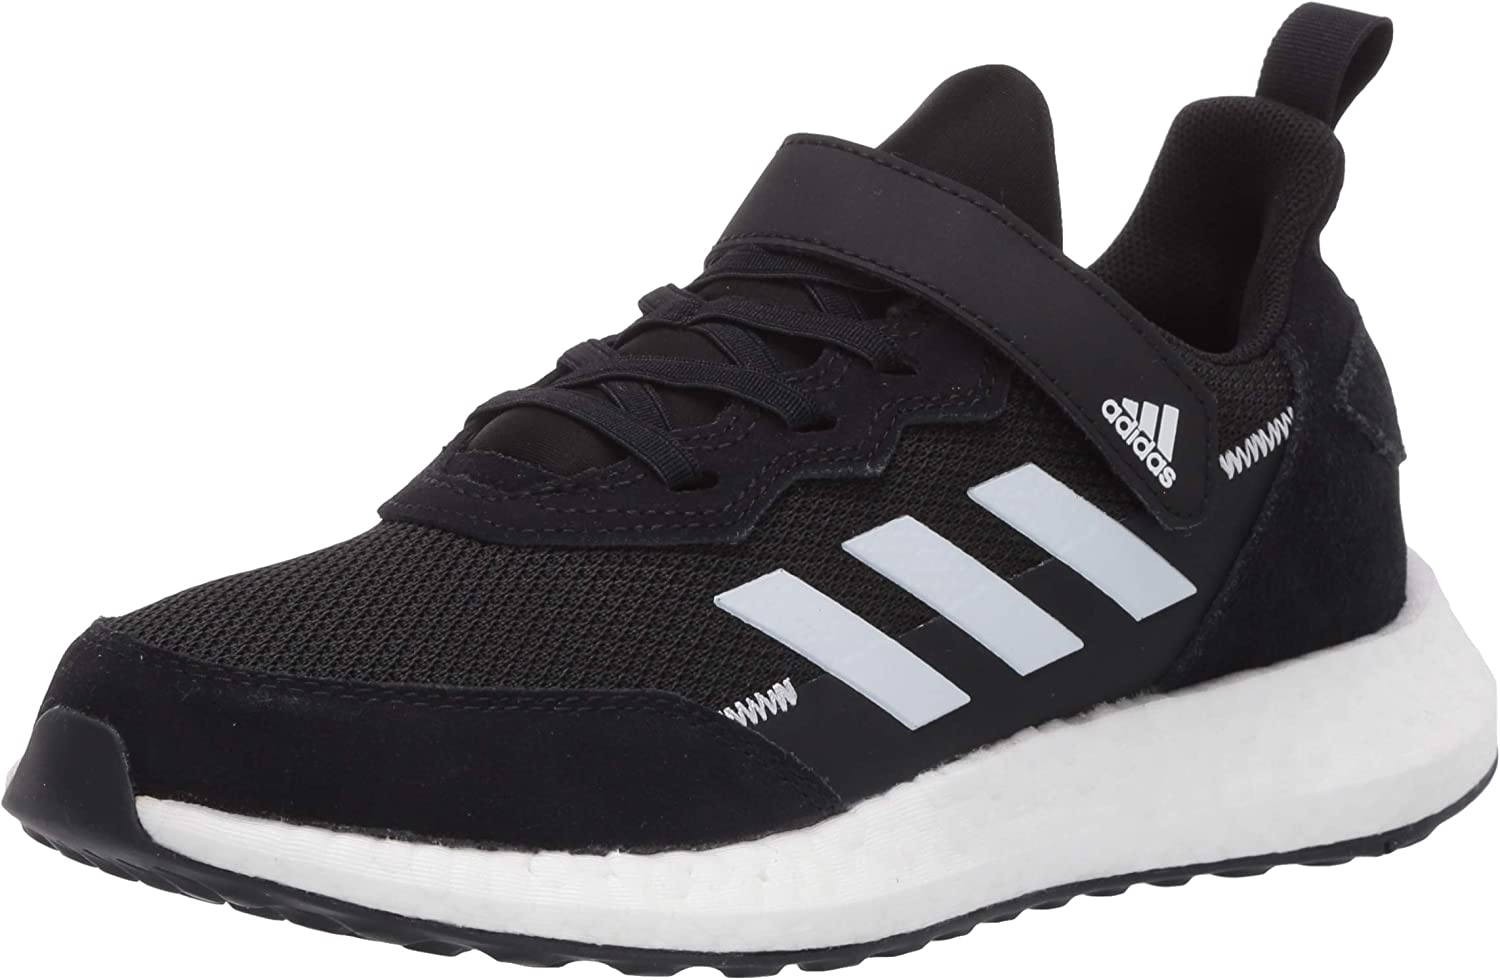 adidas Unisex-Child Rapidalux Suede and Leather Cross Trainer